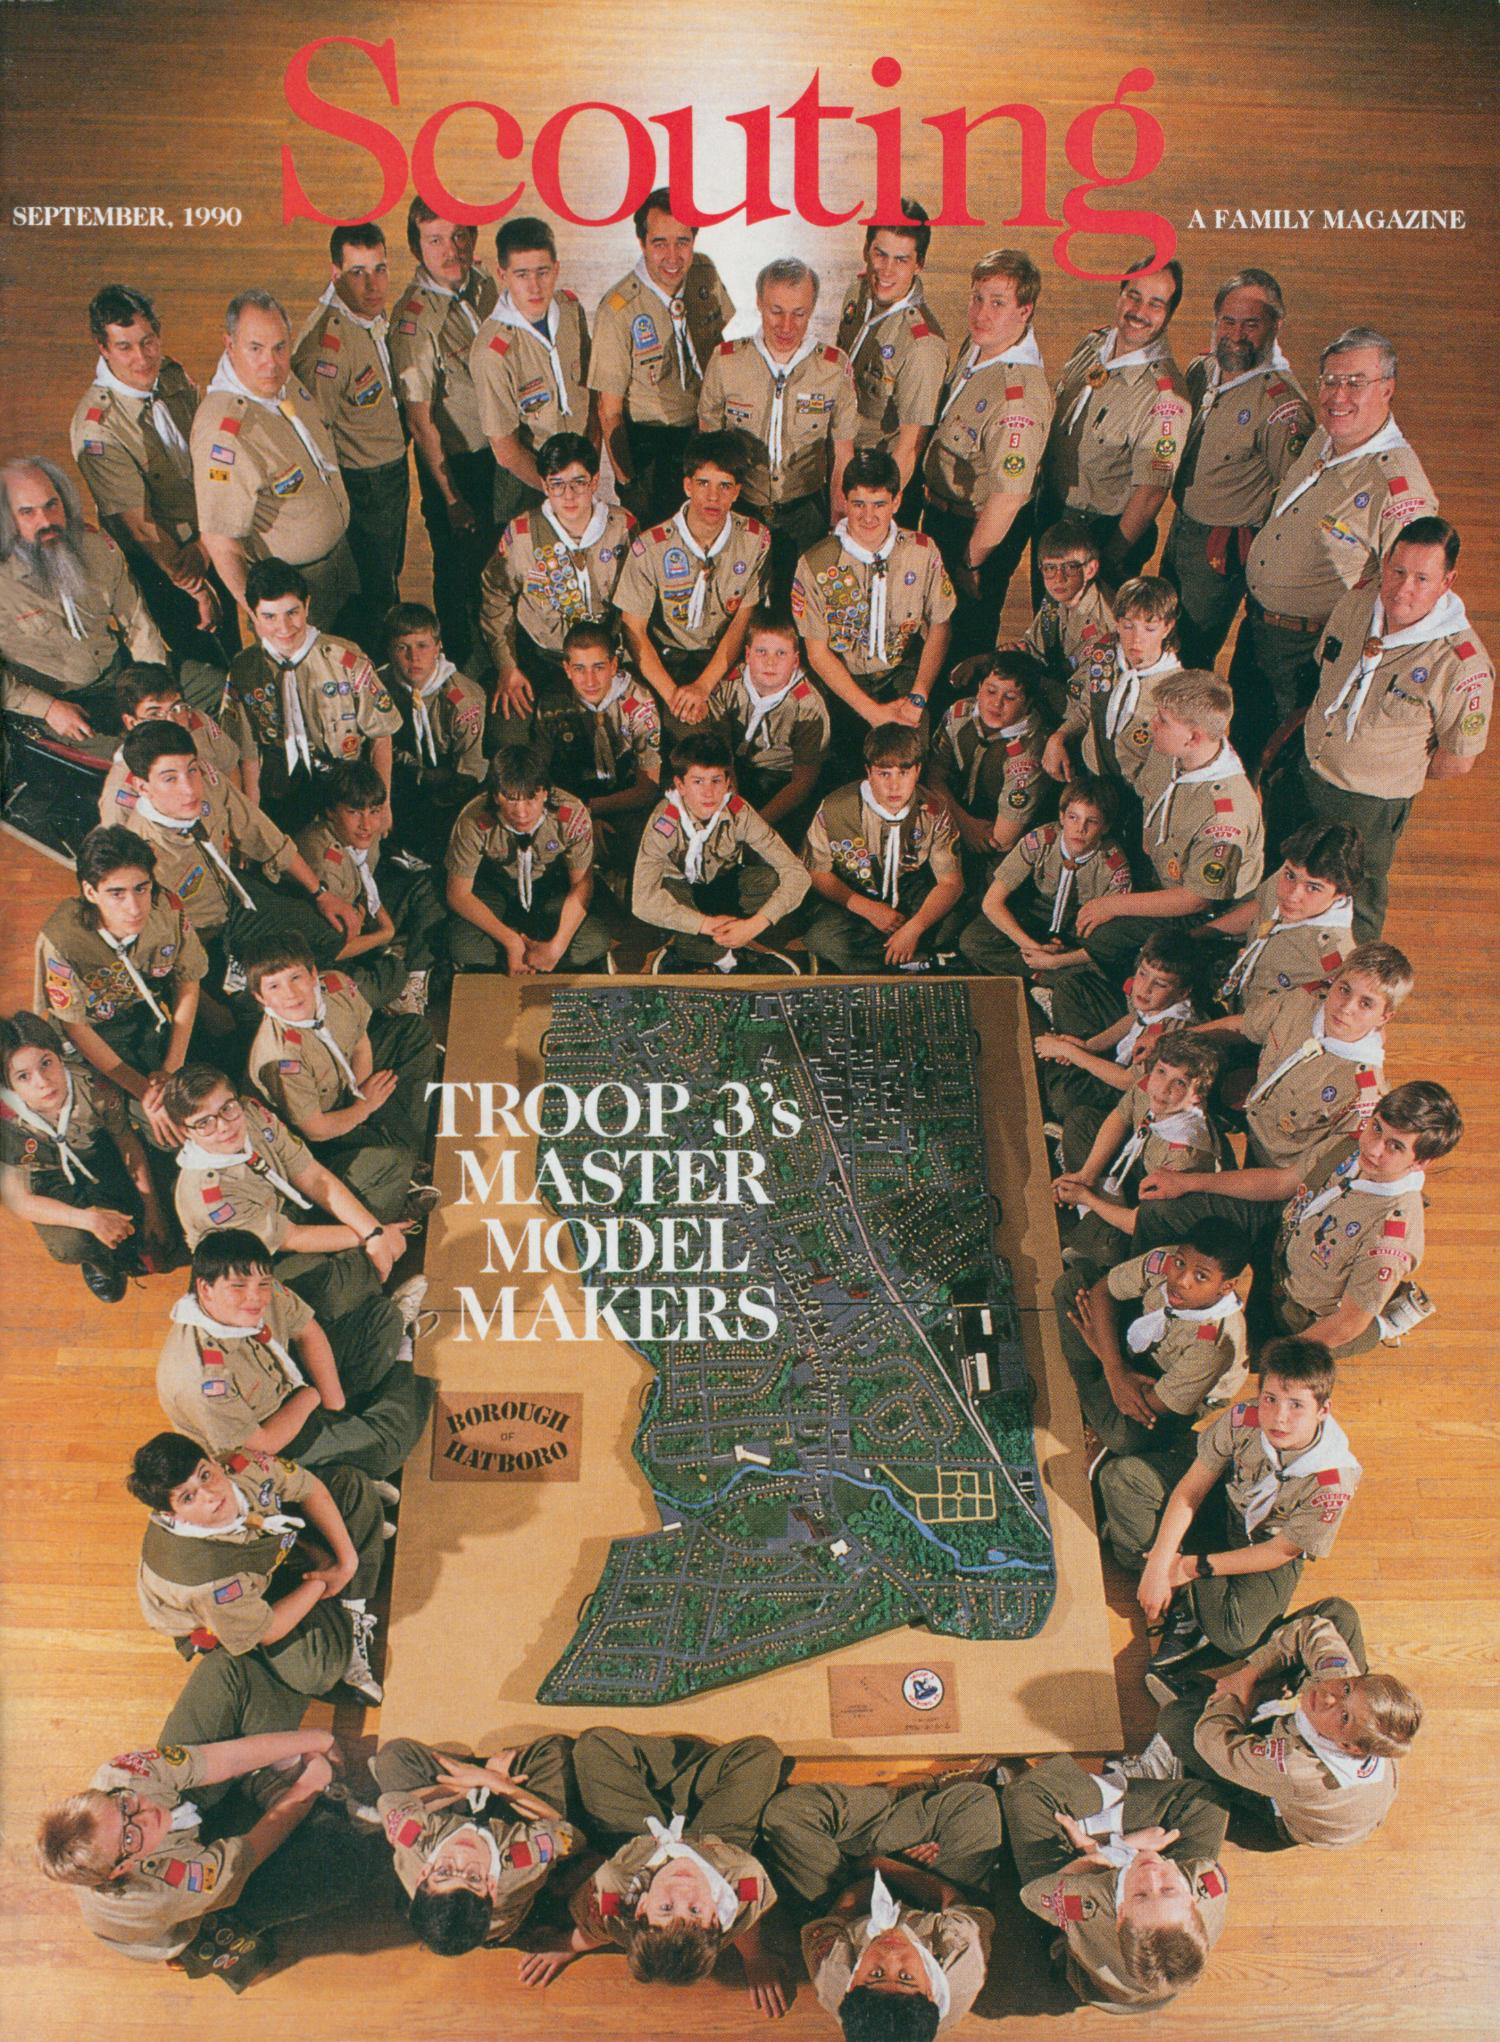 Scouting, Volume 78, Number 4, September 1990                                                                                                      Front Cover